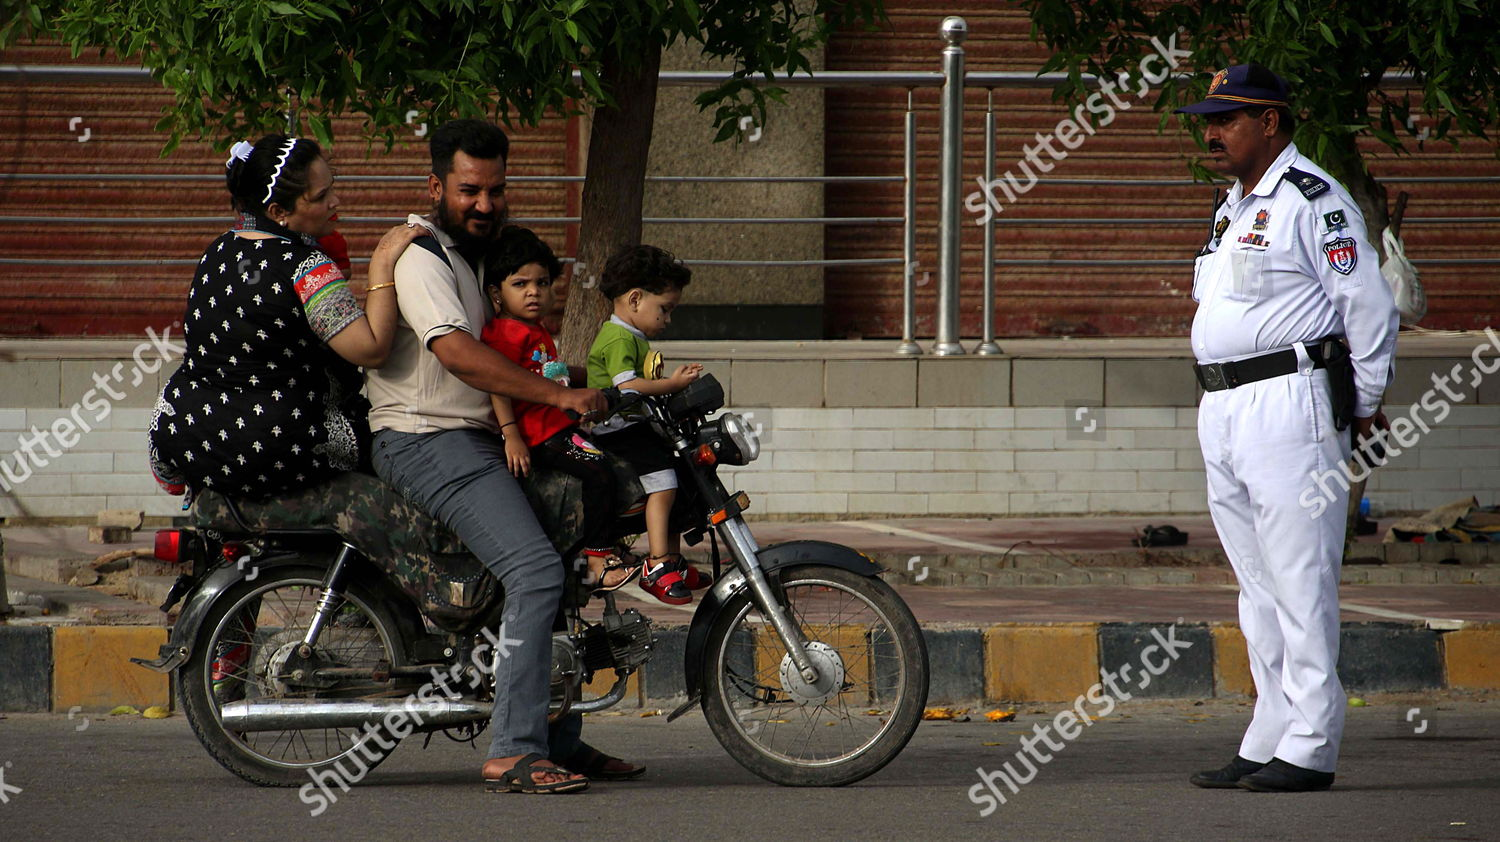 family rides on moter bike world observes Editorial Stock Photo